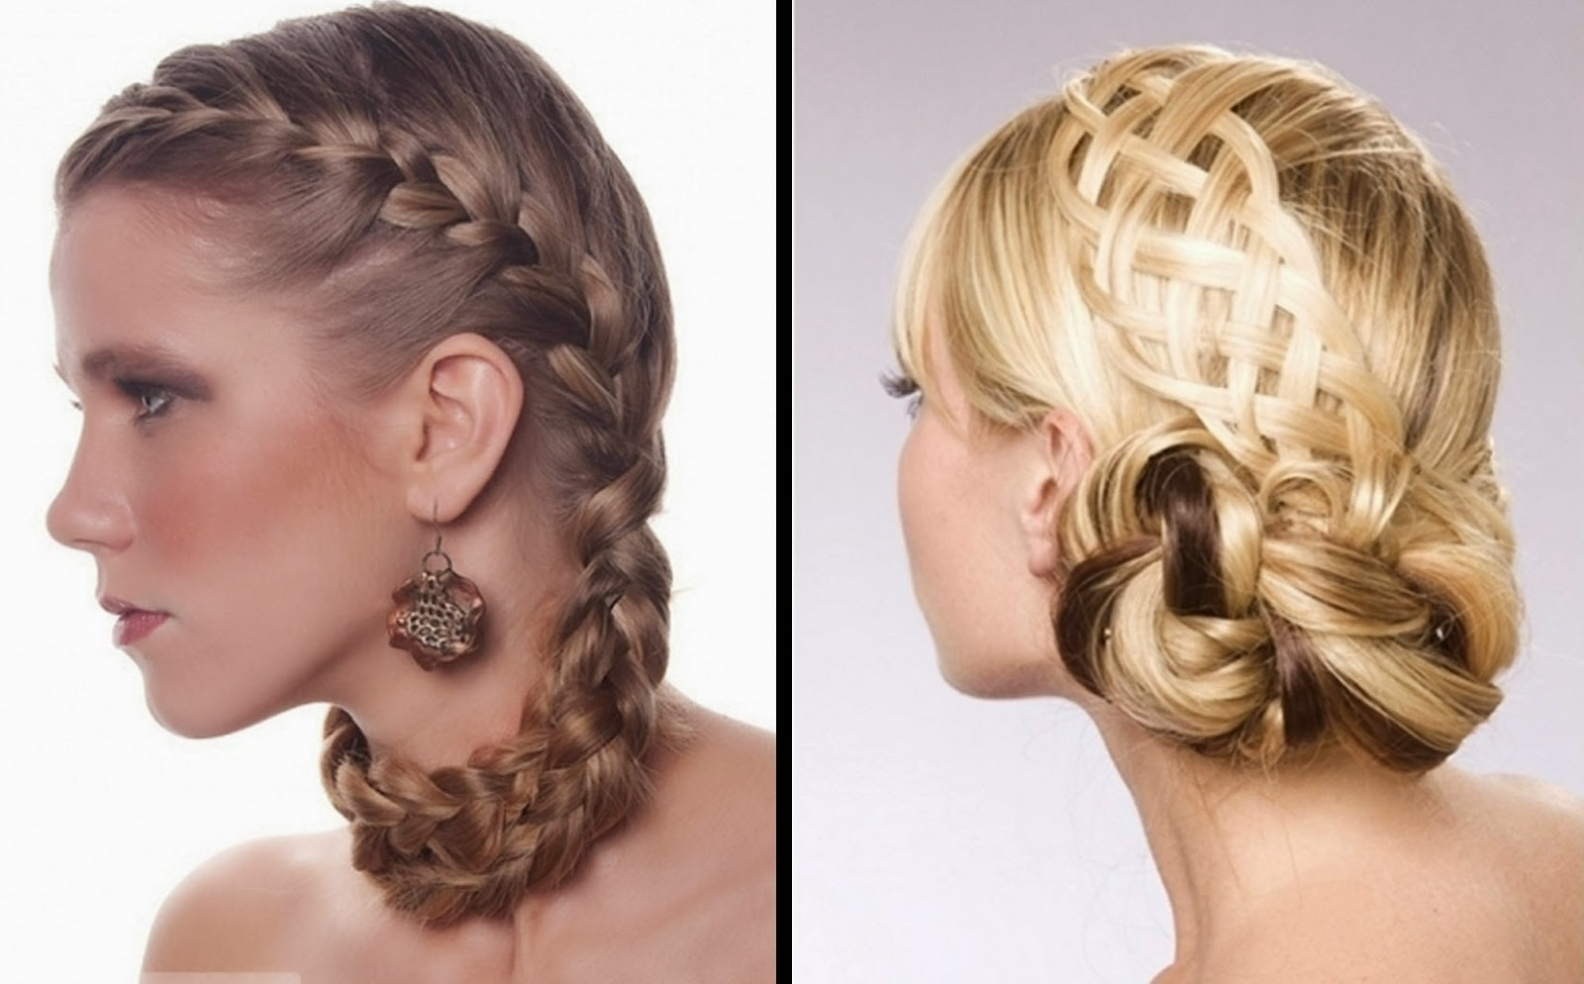 Hairstyles ~ Fancy Updo Hairstyles For Long Hair Fancy Updo Inside Fancy Updo Hairstyles (View 13 of 15)